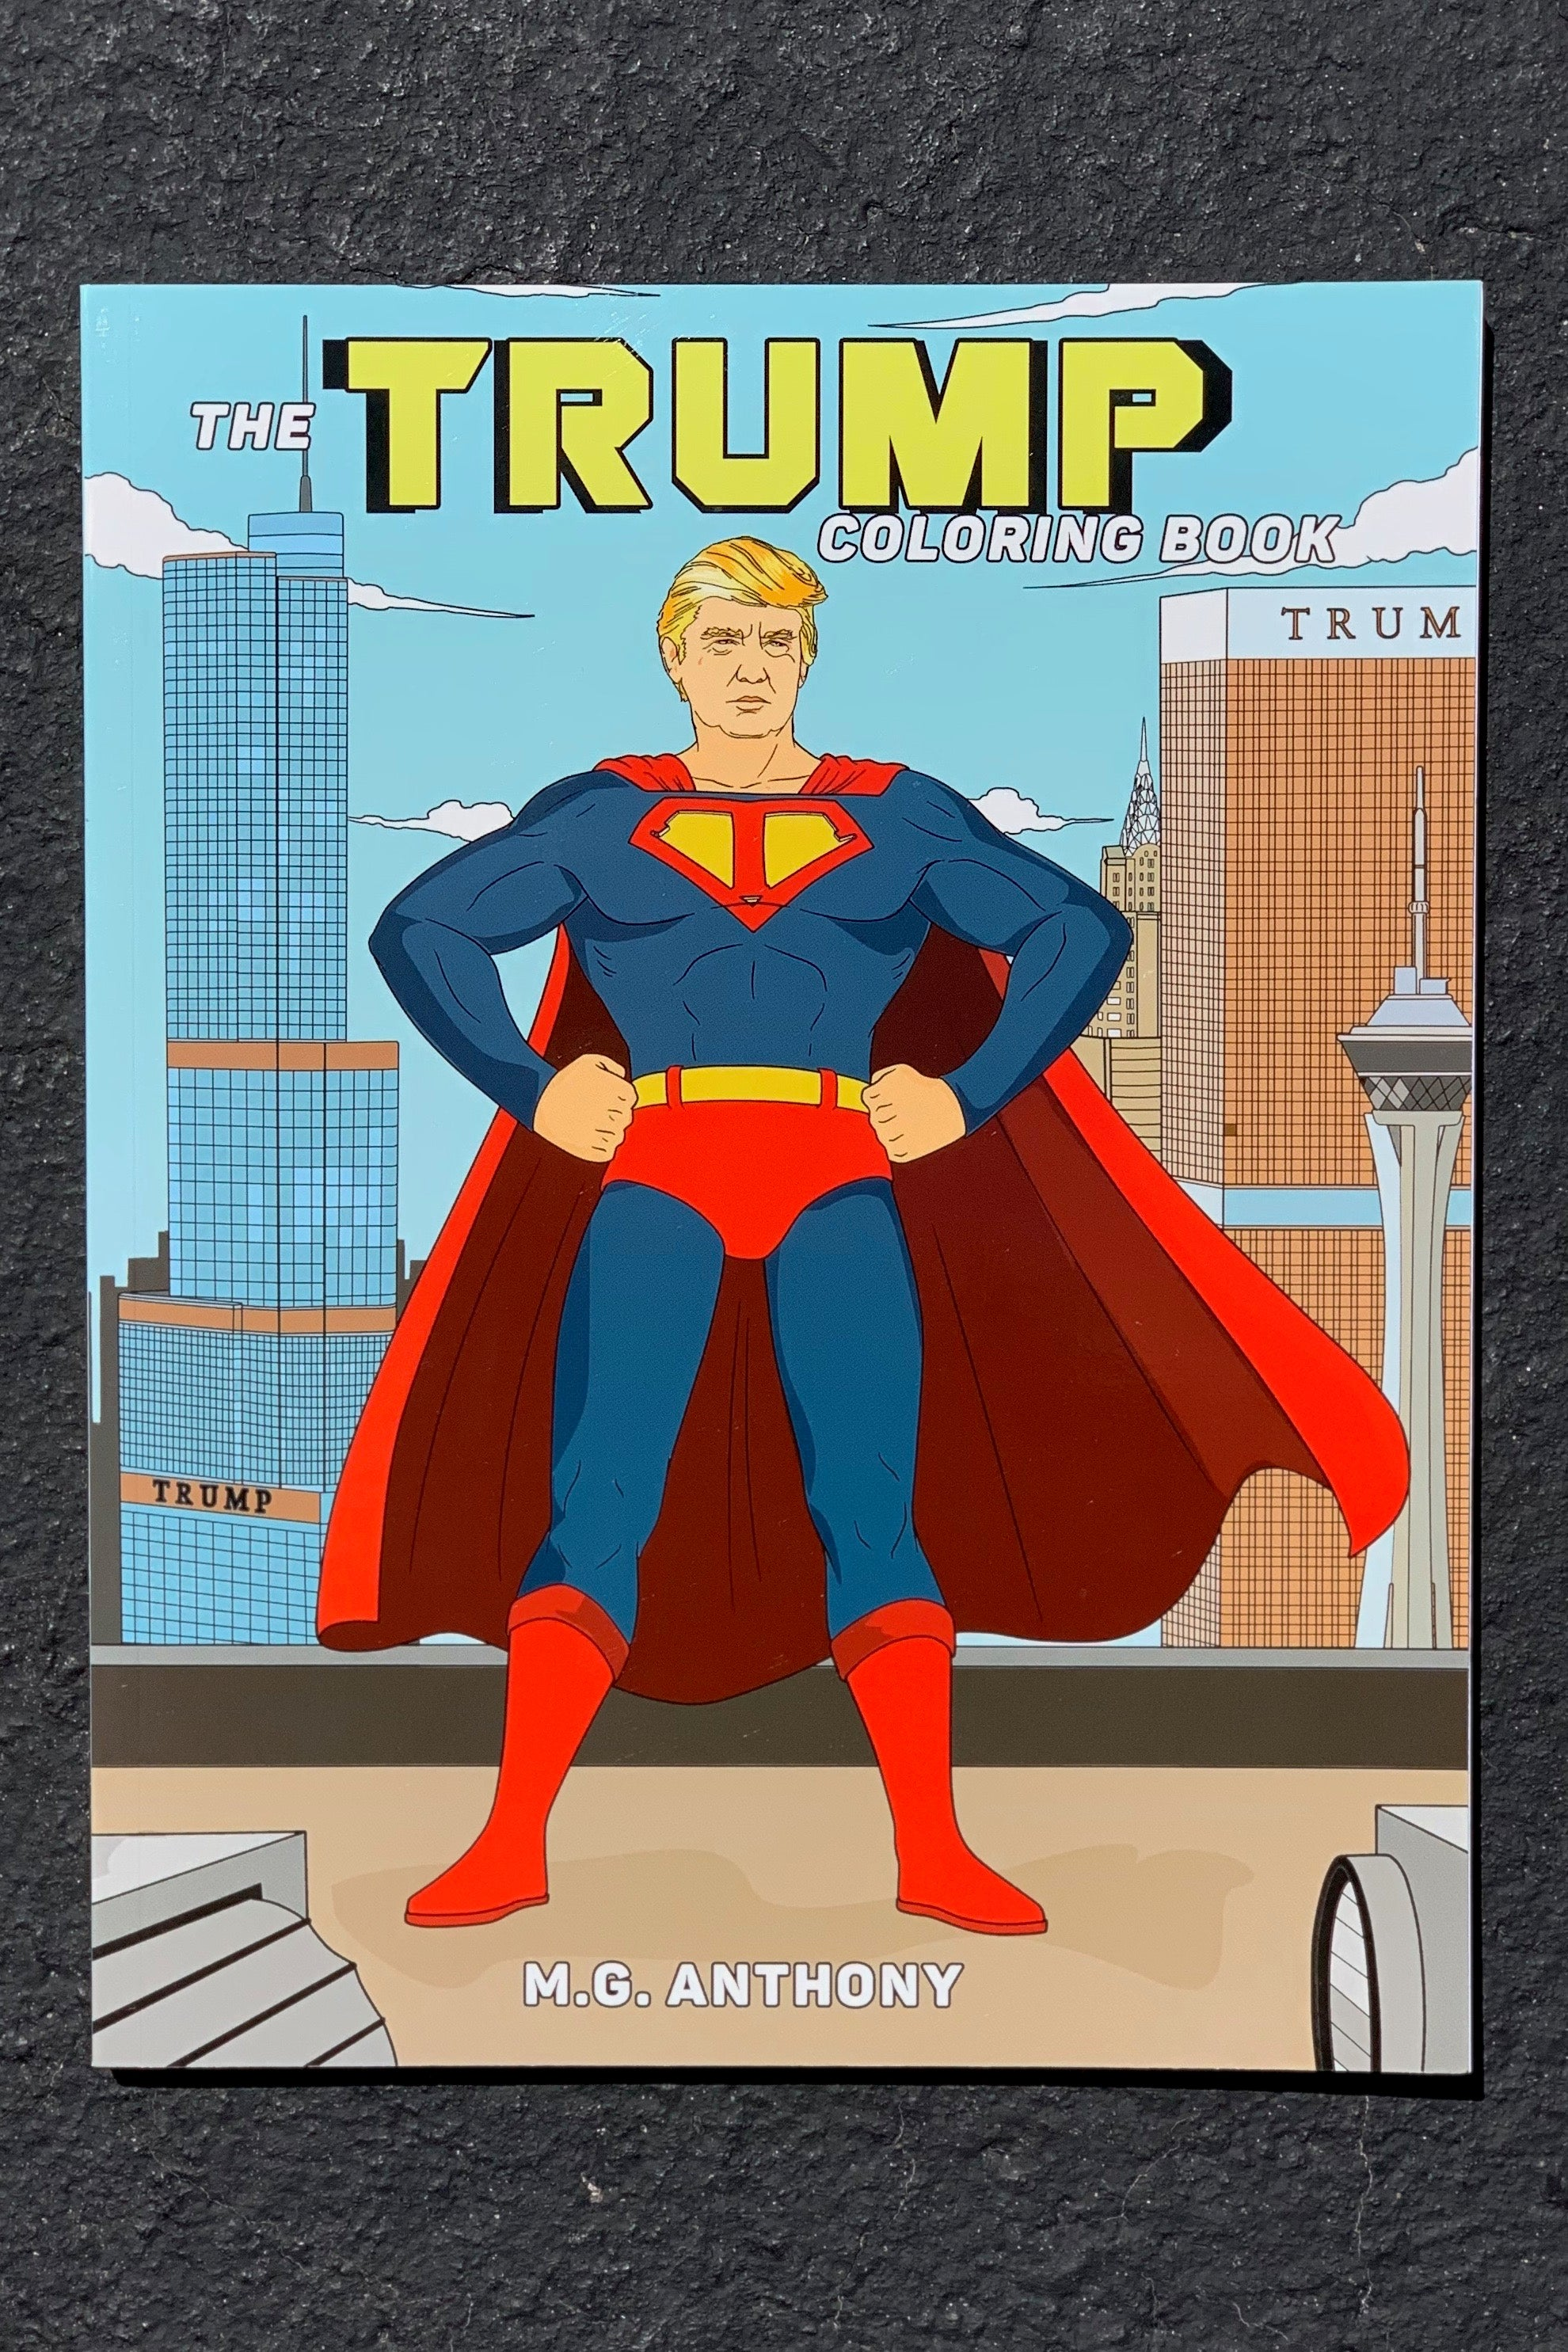 The Trump Coloring Book